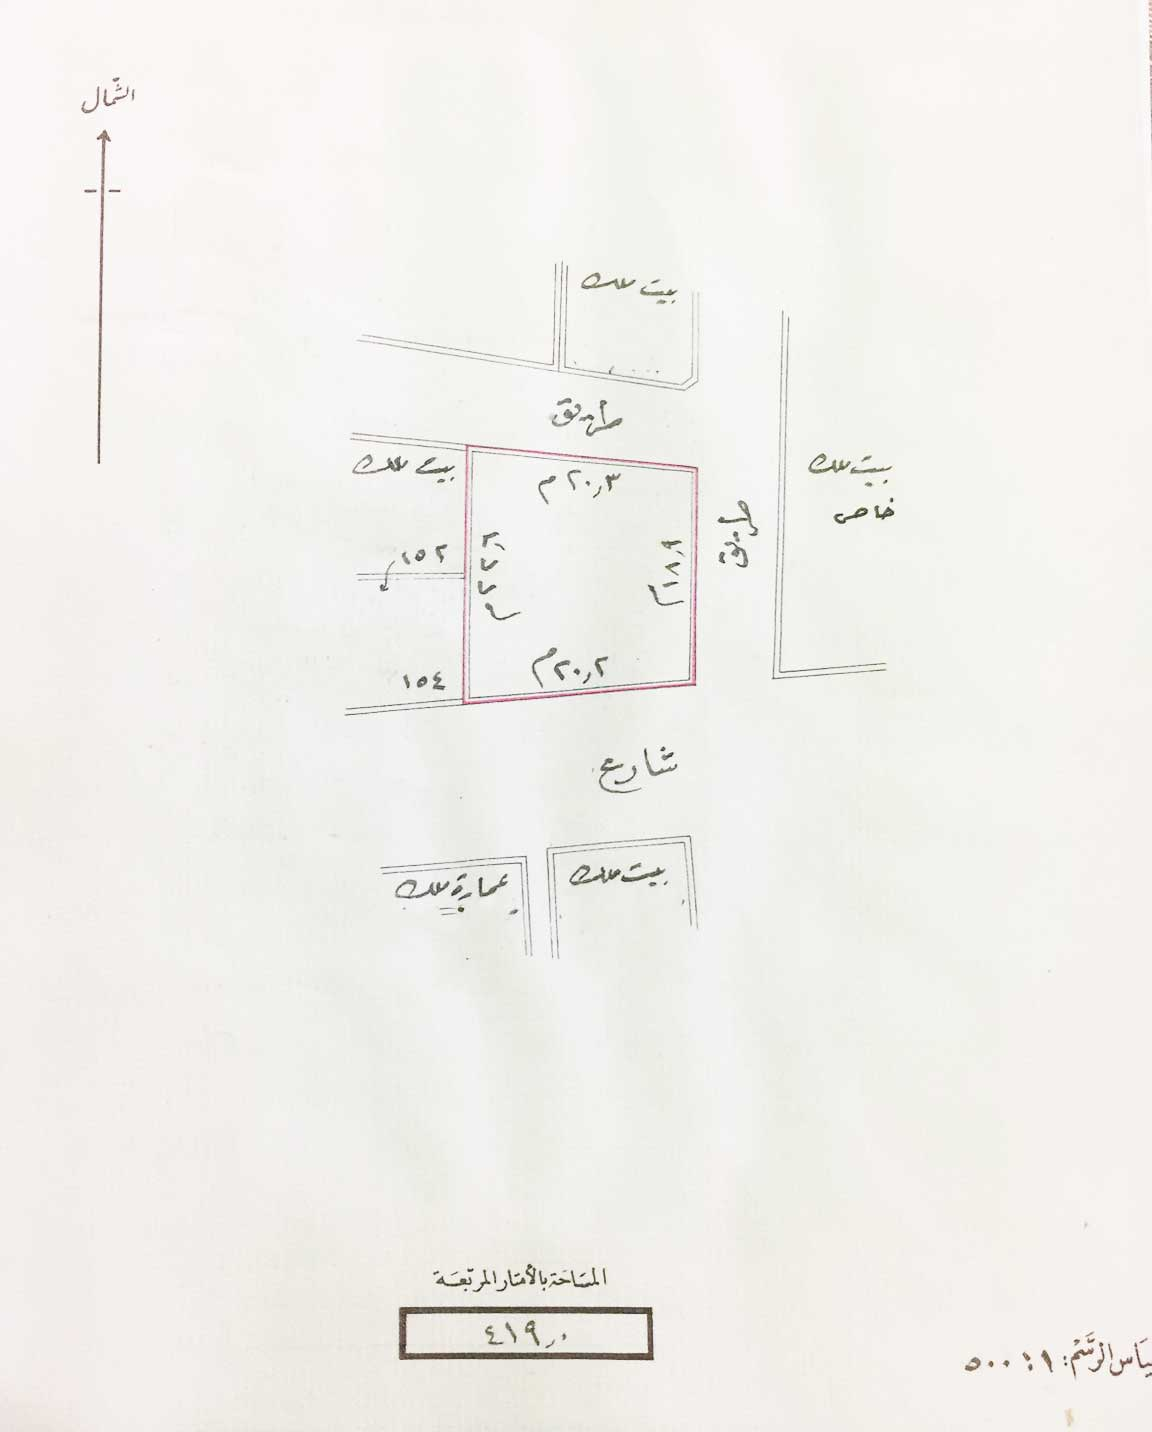 For sale commercial land in the center of Manama. Ref: MAN-MH-004